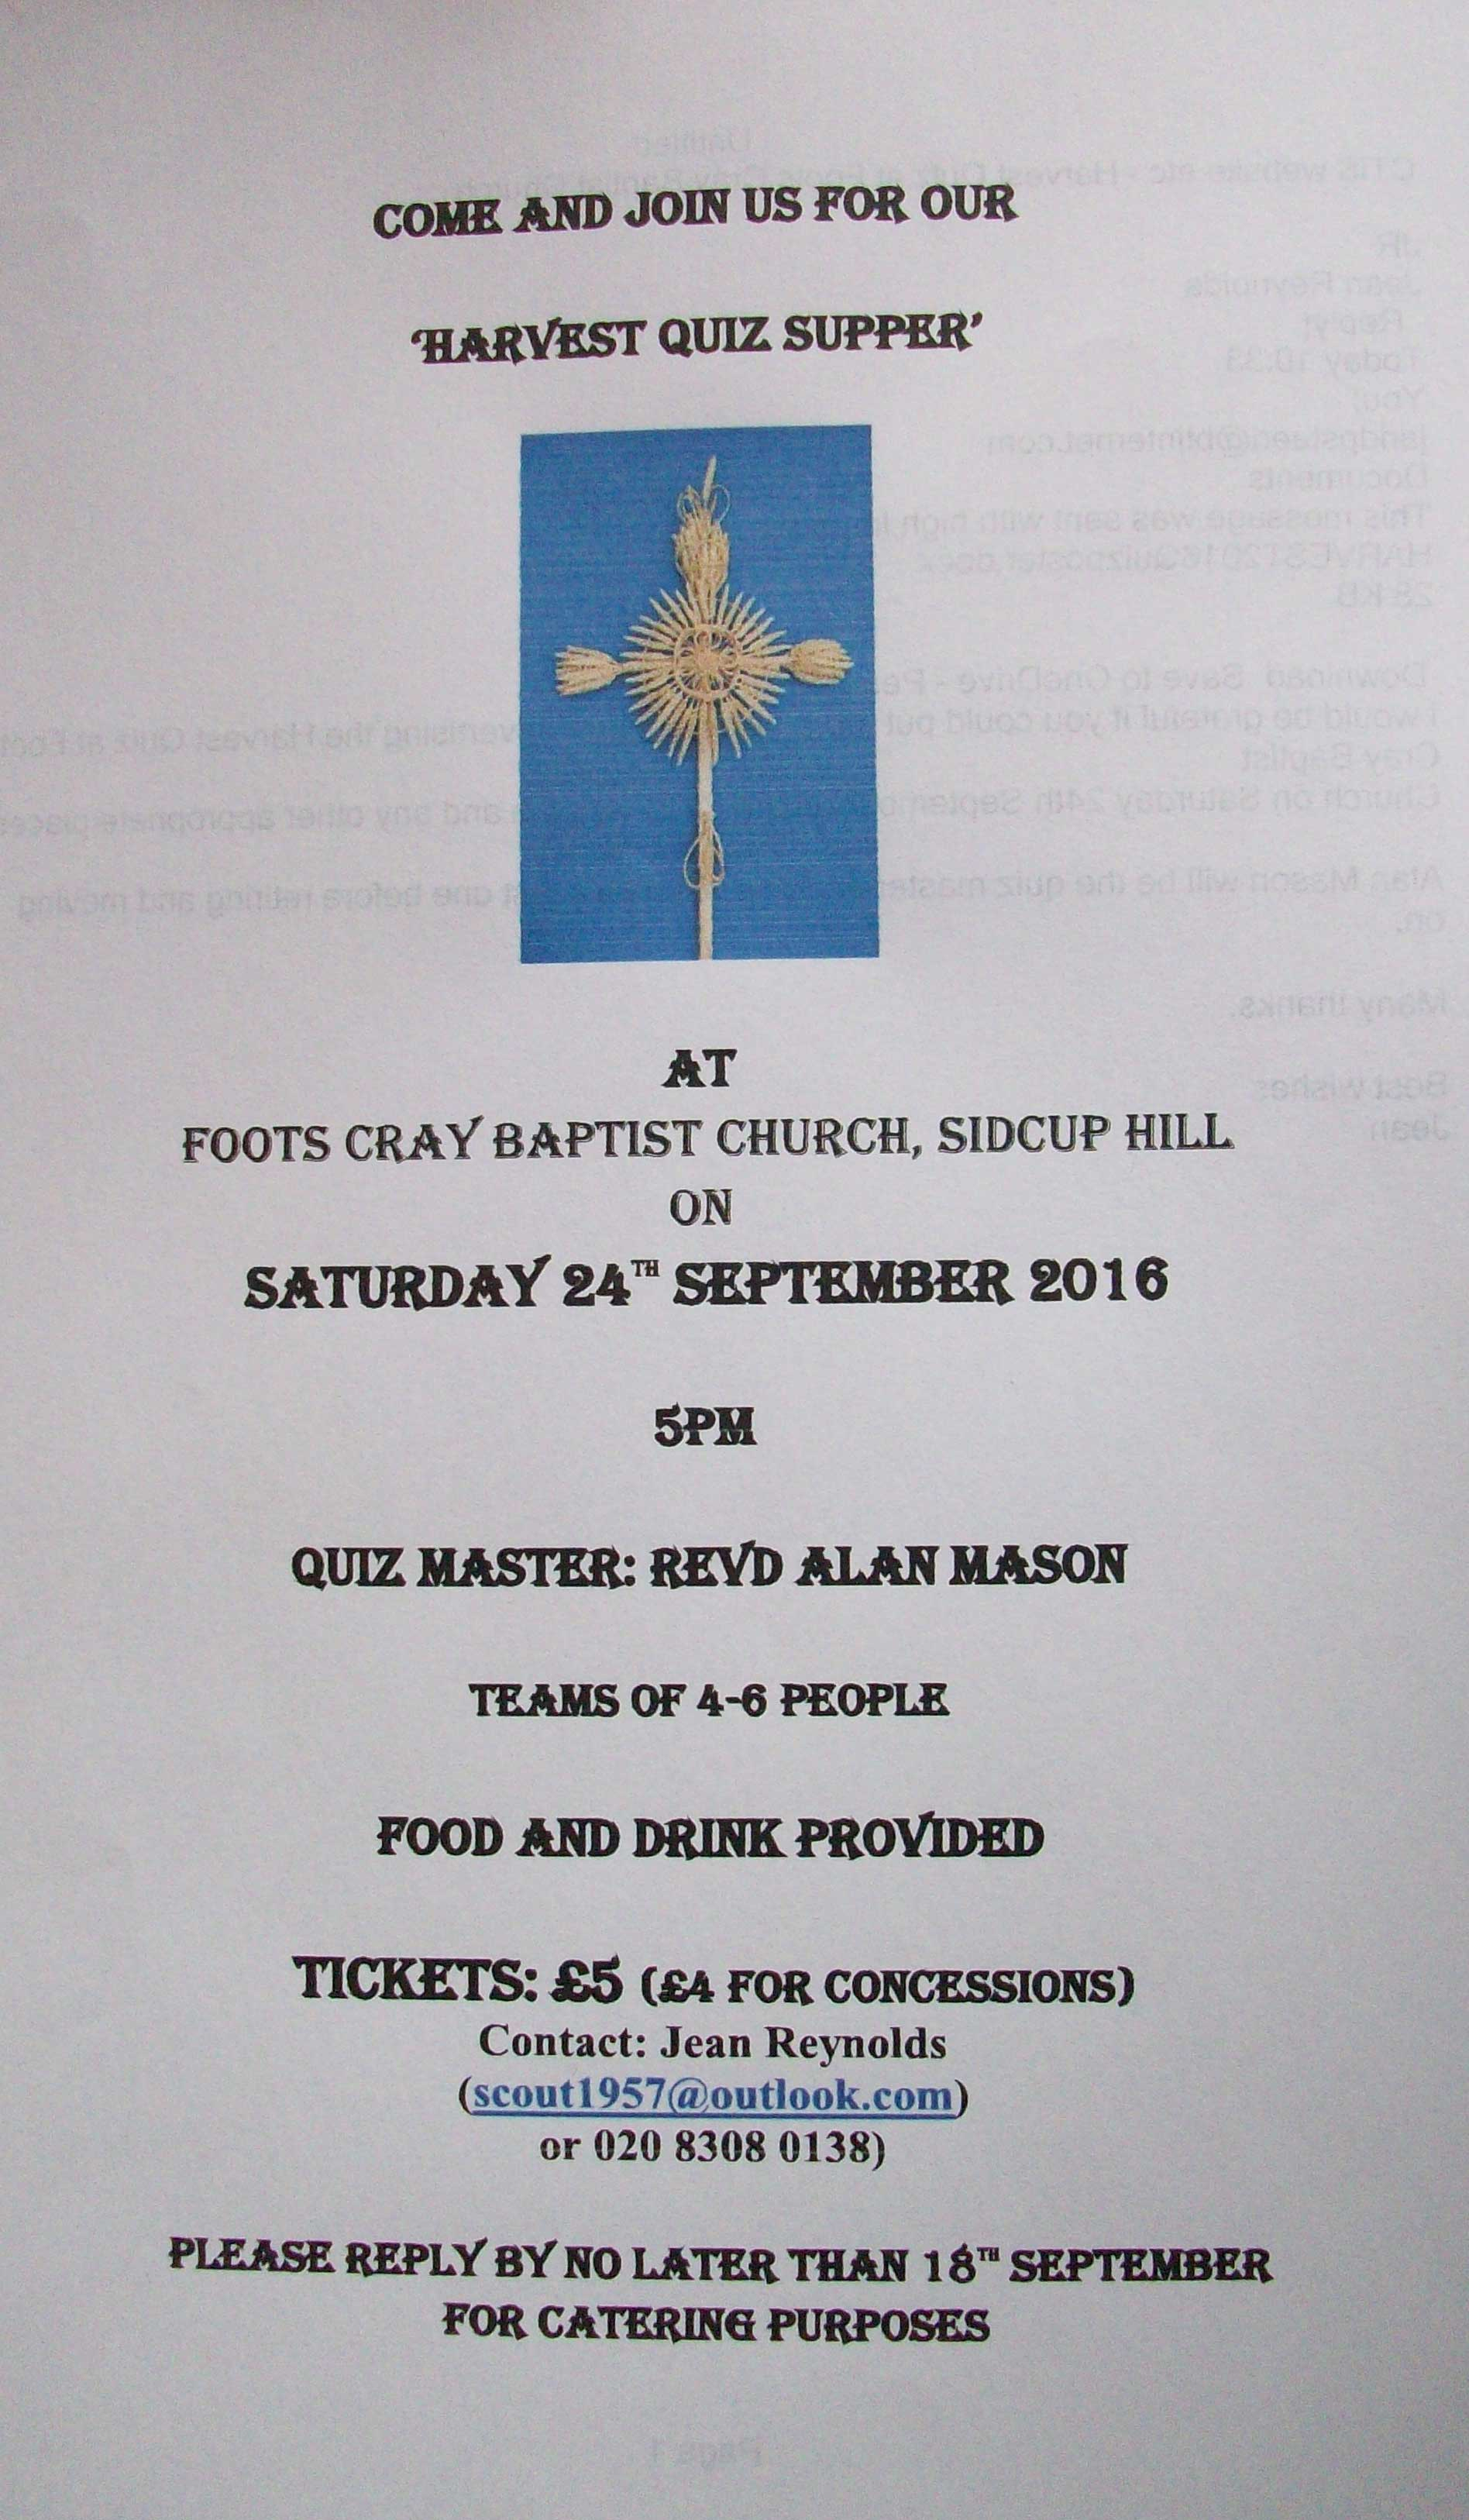 Harvest Quiz Supper at Foots Cray Baptist Church, Sidcup